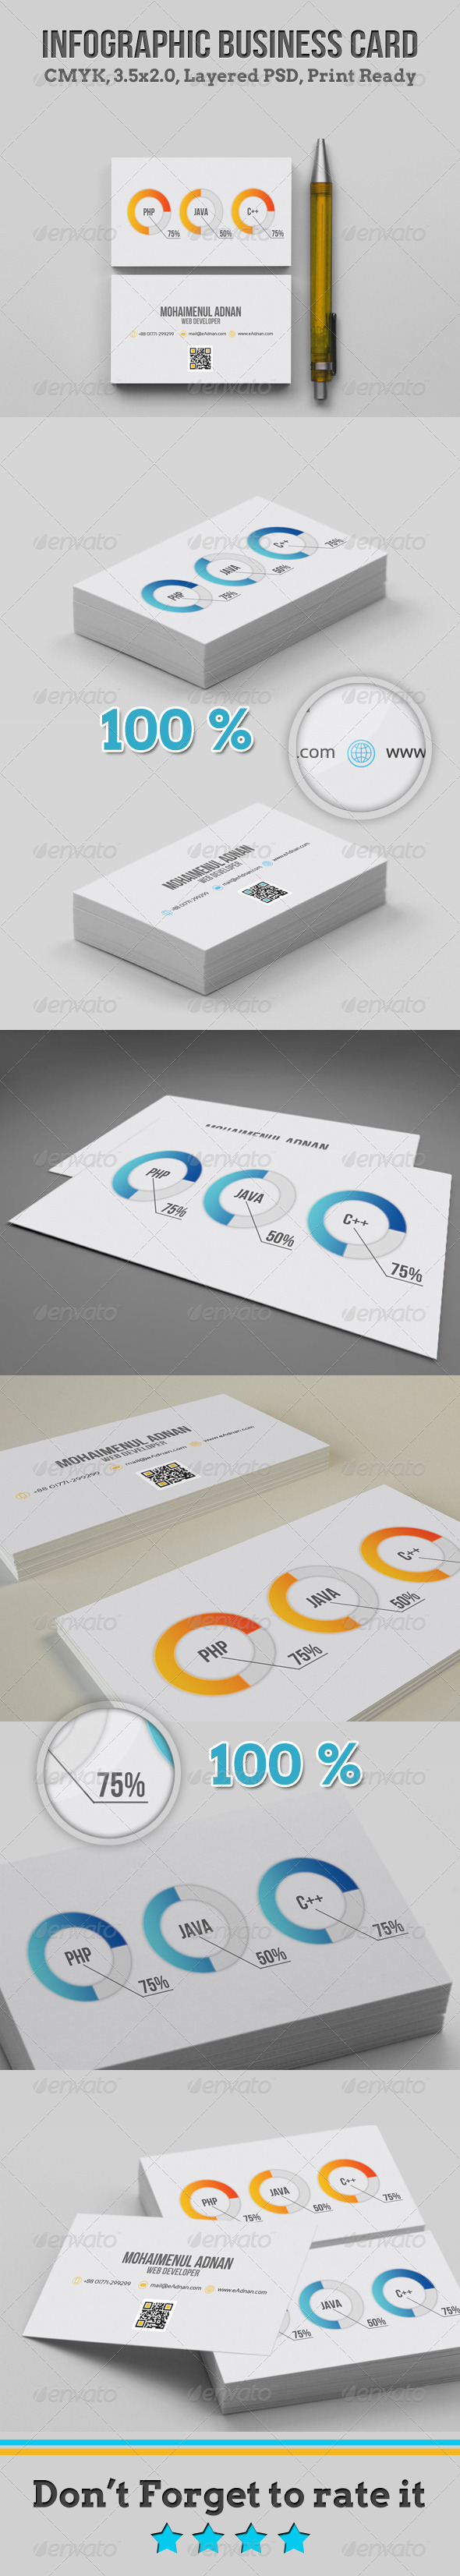 GraphicRiver Infographic Business Card 4687552